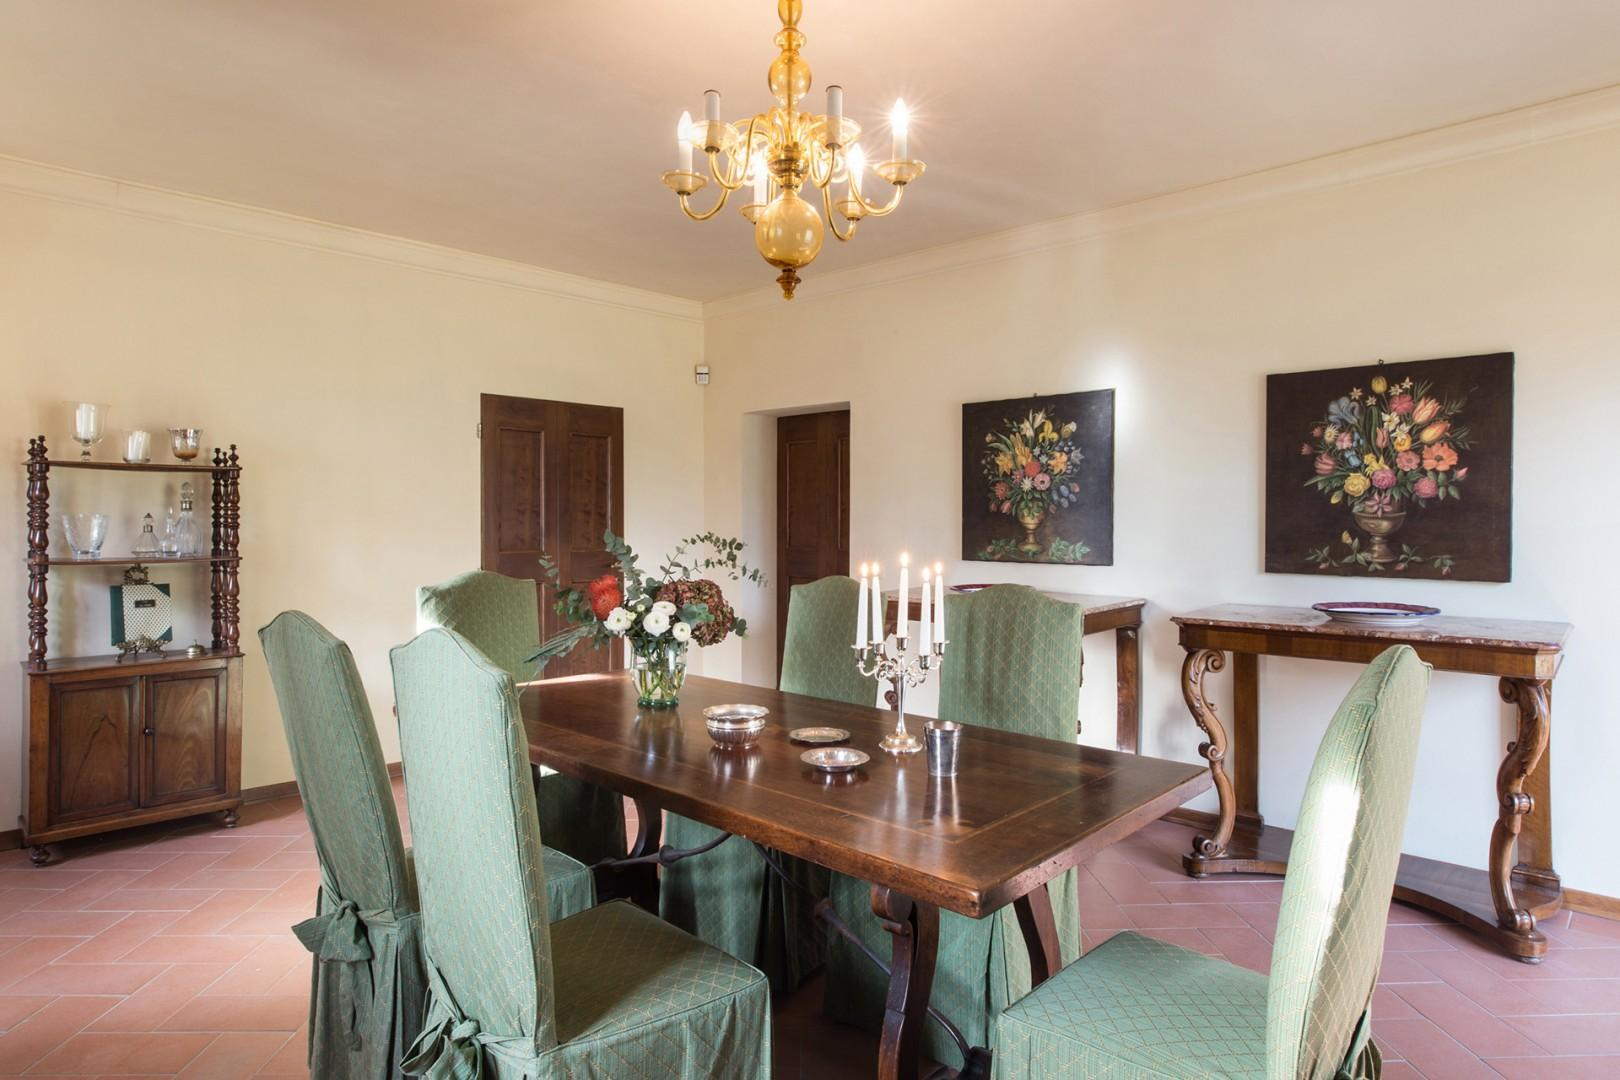 The elegant dining area opens onto the gardens and pool area through French doors.